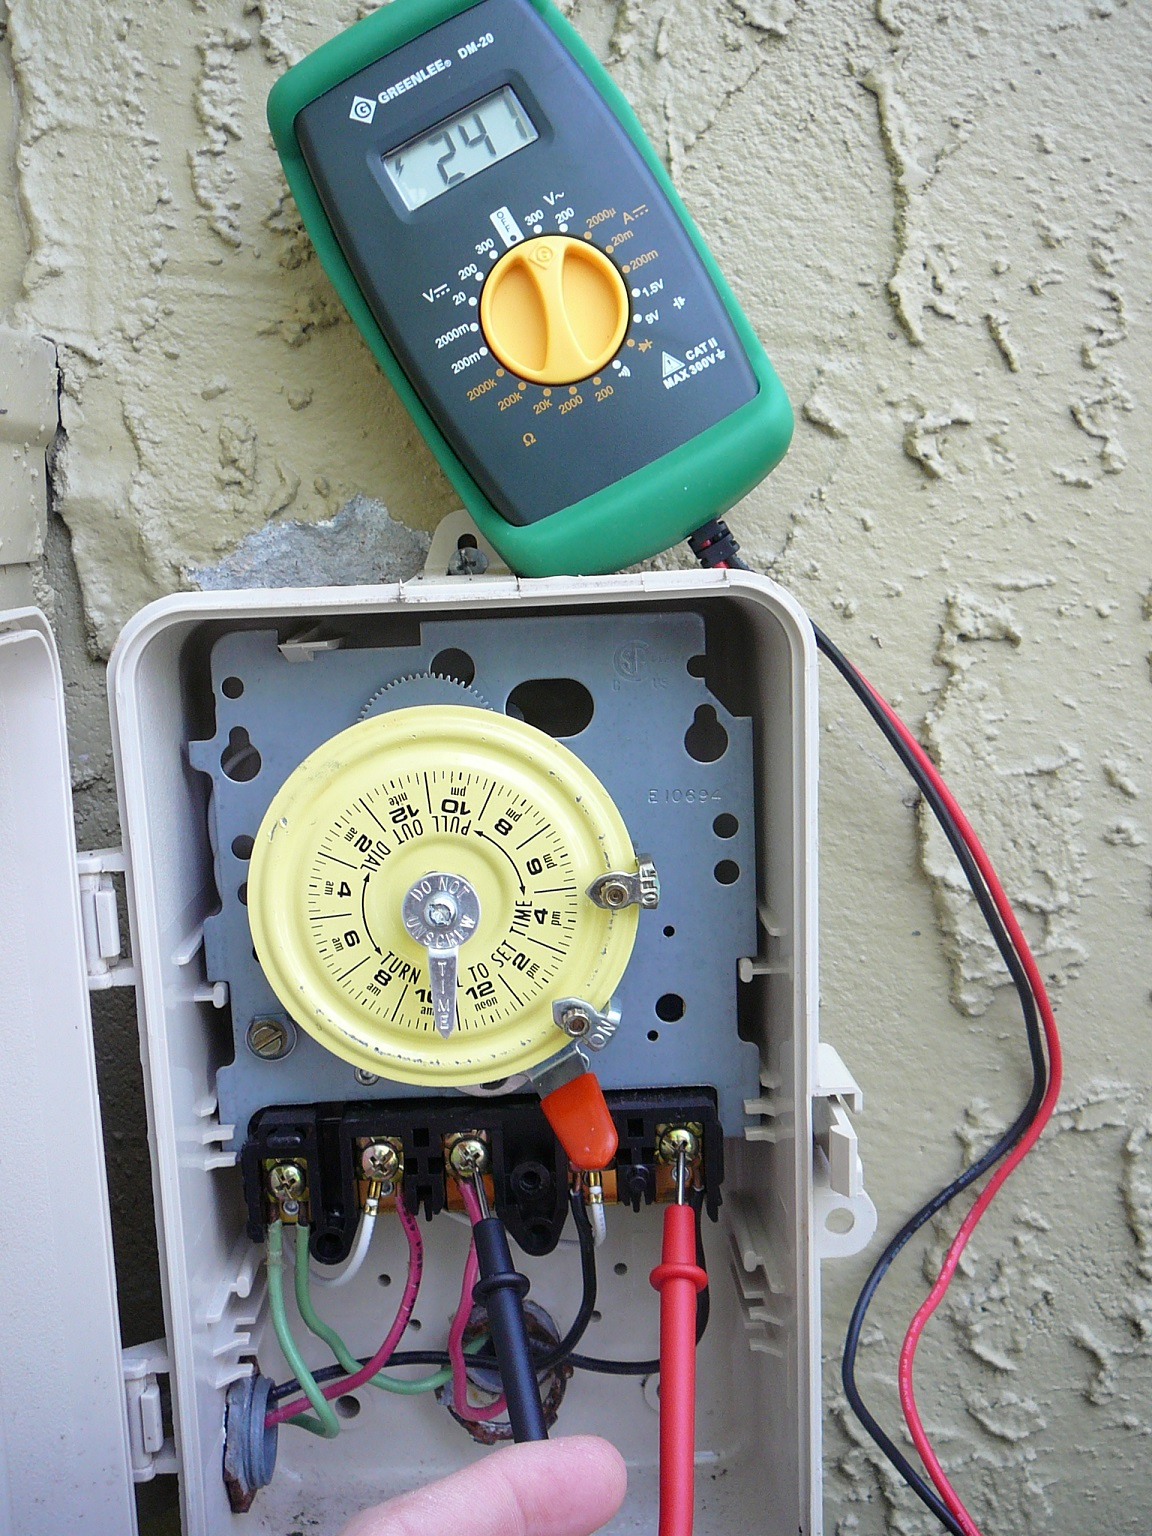 hight resolution of if you are installing a new pool pump or you have to troubleshoot a failing pump you will generally want to measure the motors supply voltage